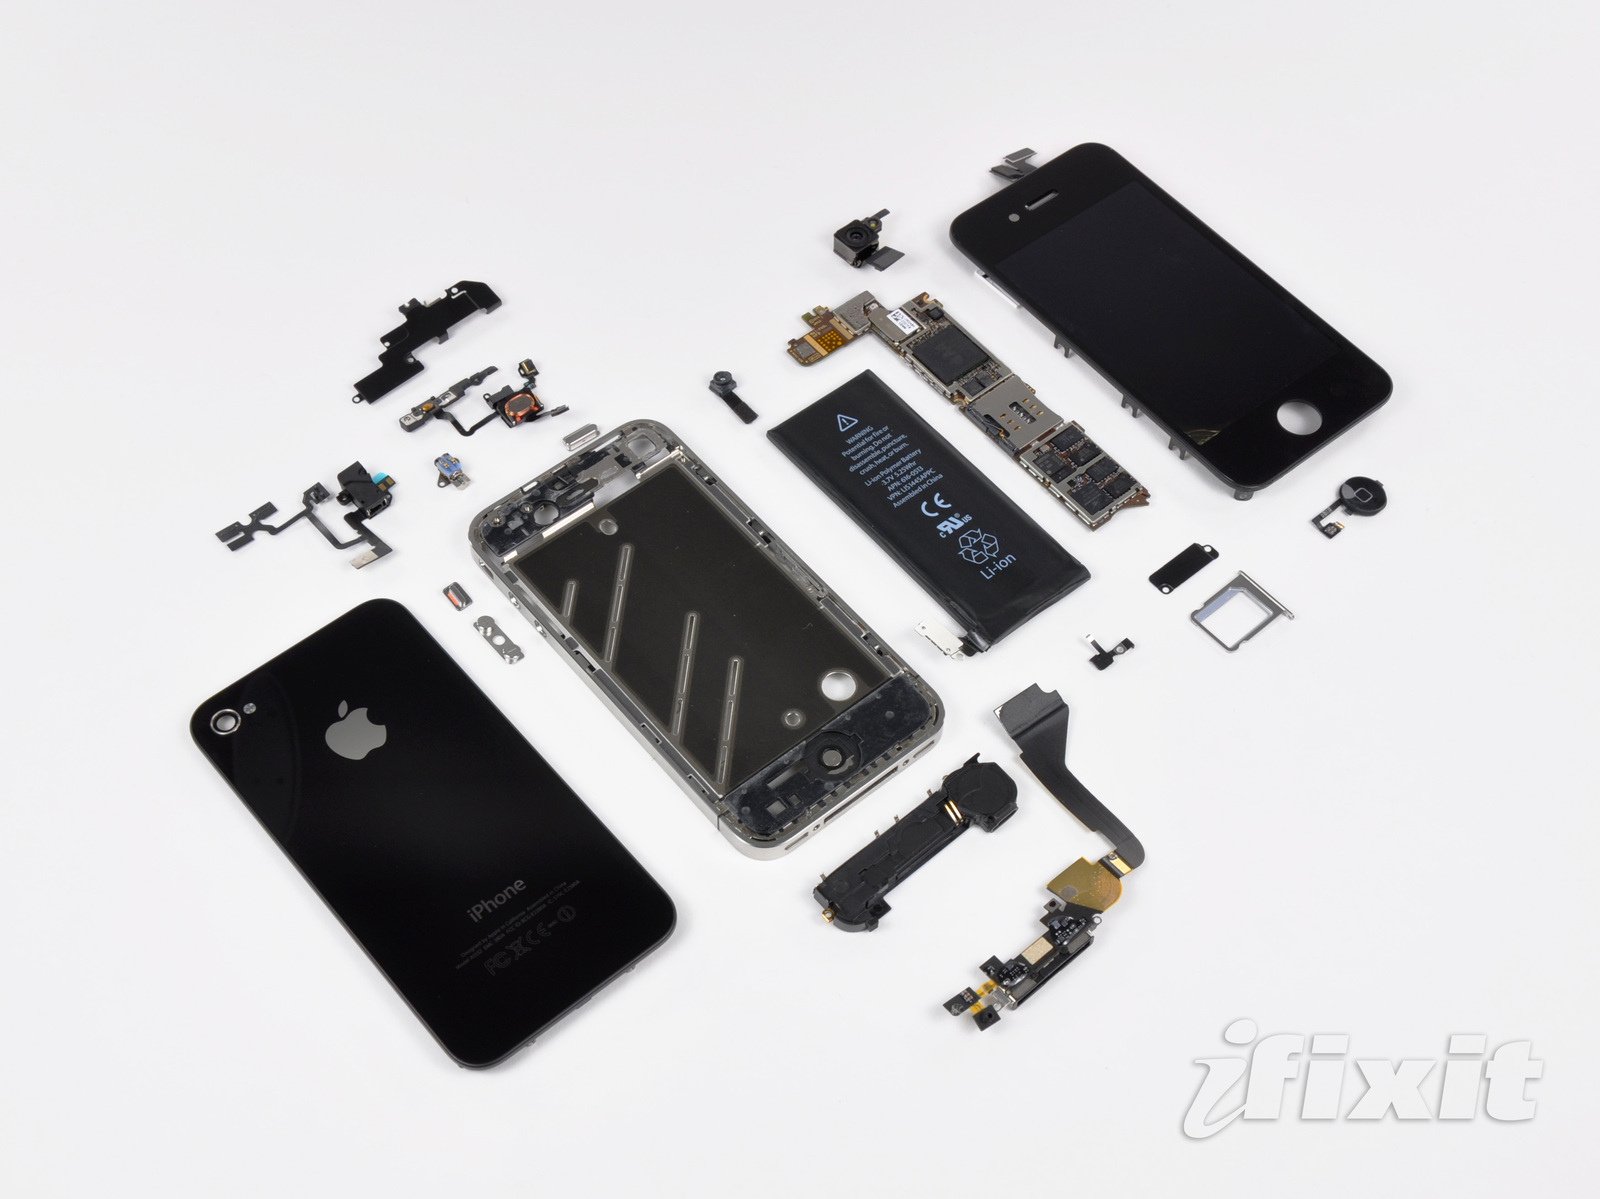 iFixit iPhone 4 teardown